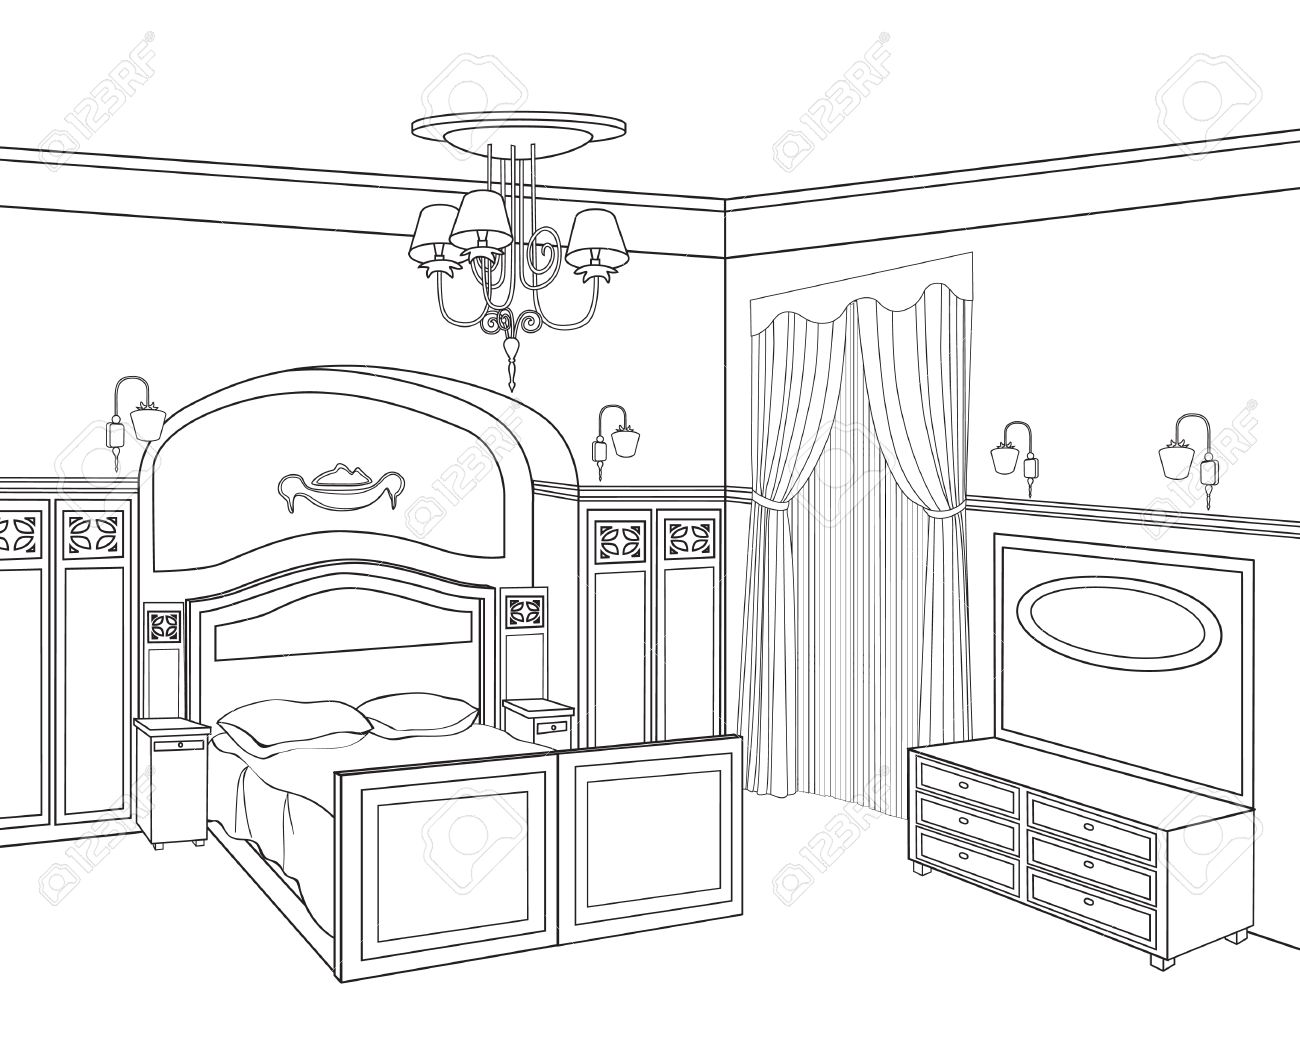 Bedroom Furniture Retro Style Room Editable Outline Sketch 37579137 Bedroom  Furniture Retro Style Room Editable Outline Sketch Of A Interior Graphical  ...